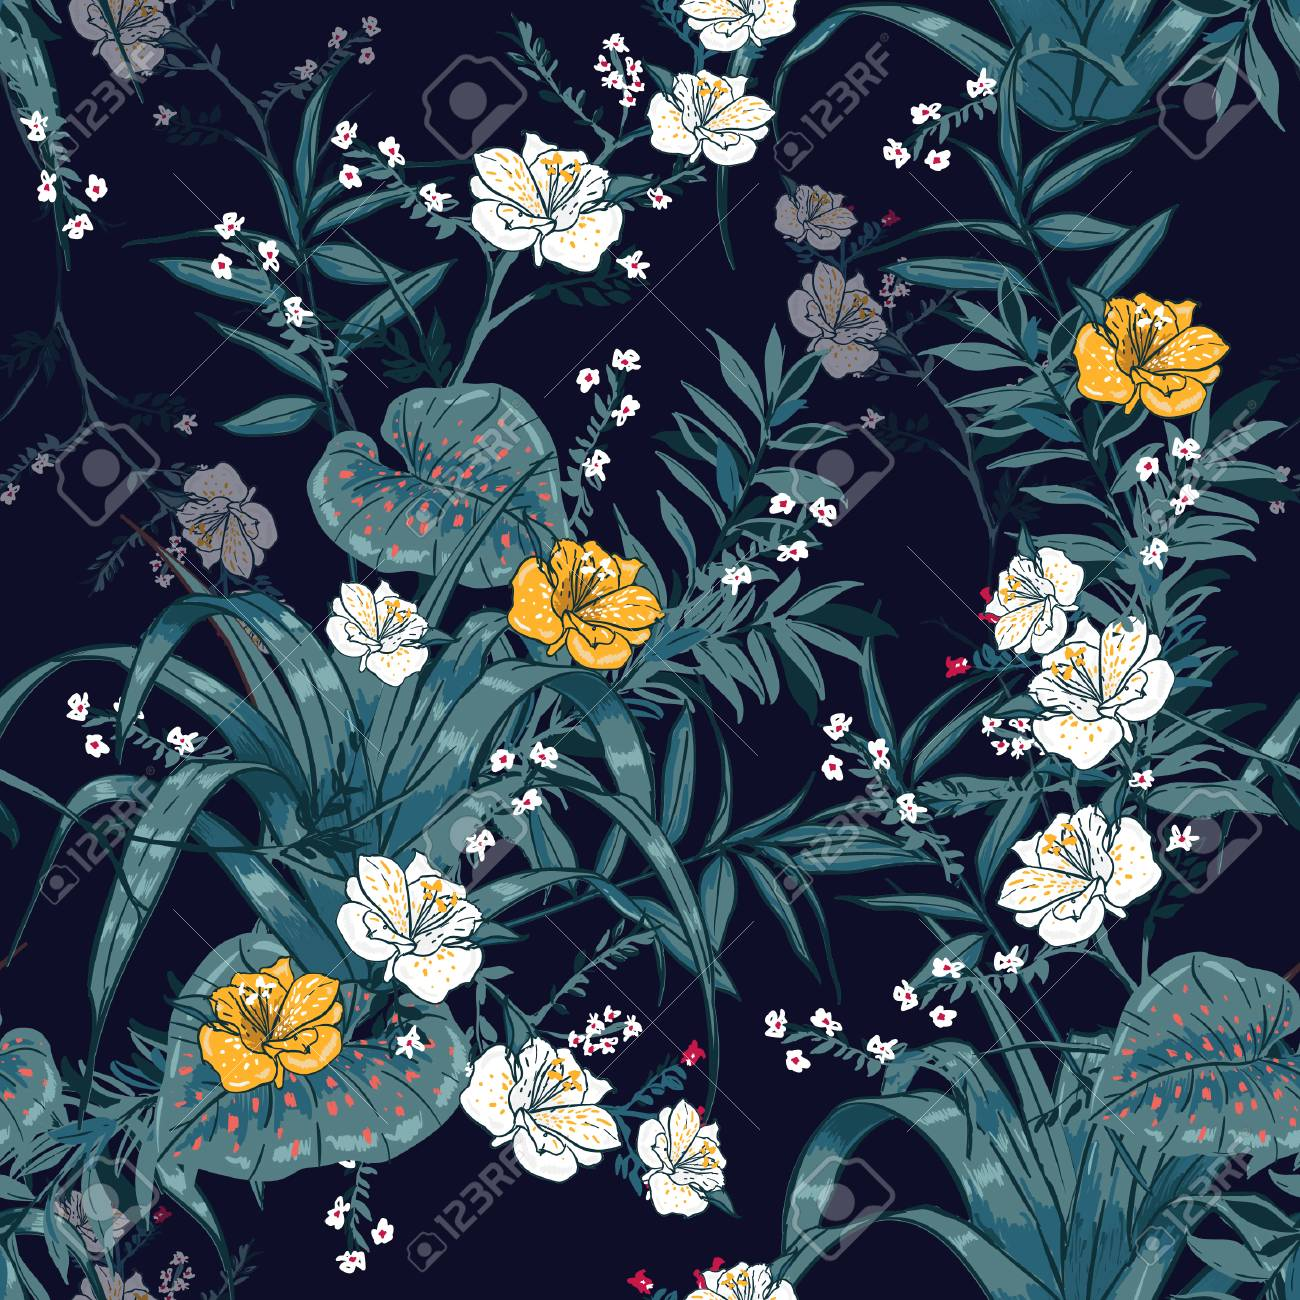 Trendy Vector Seamless Beautiful Artistic Dark Tropical Pattern